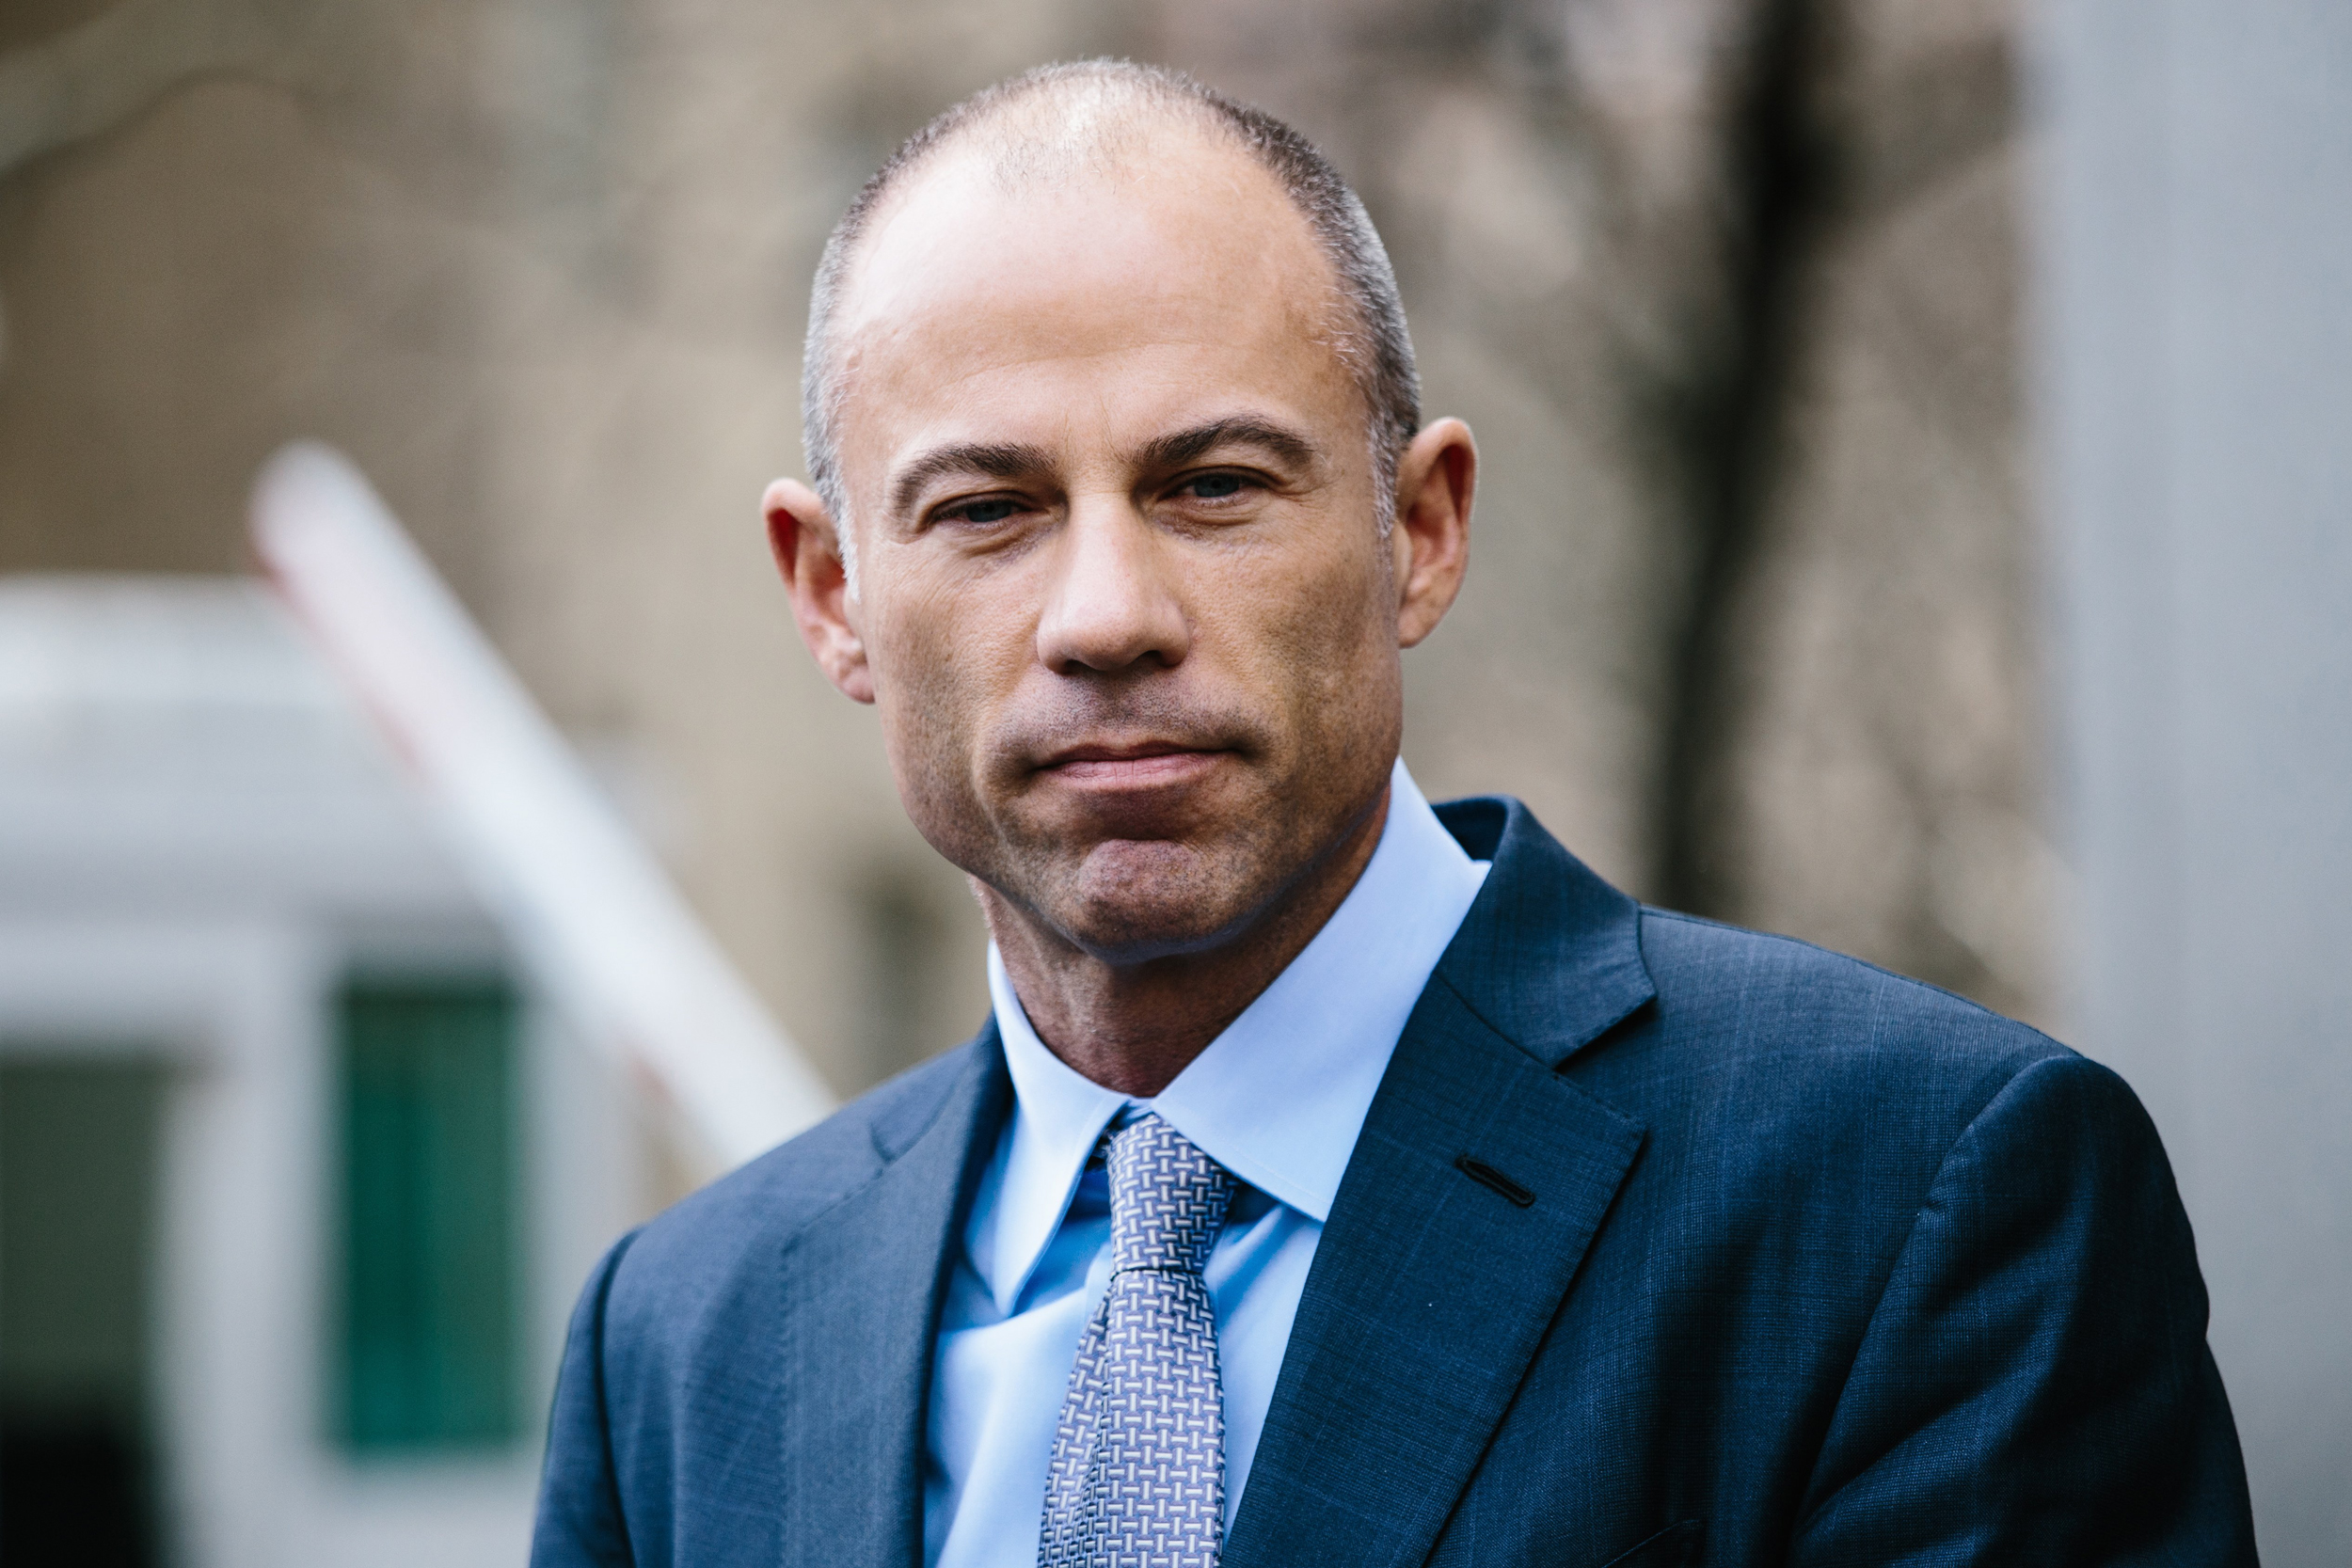 nbcnews.com - Michael Avenatti charged with trying to extort $20 million from Nike